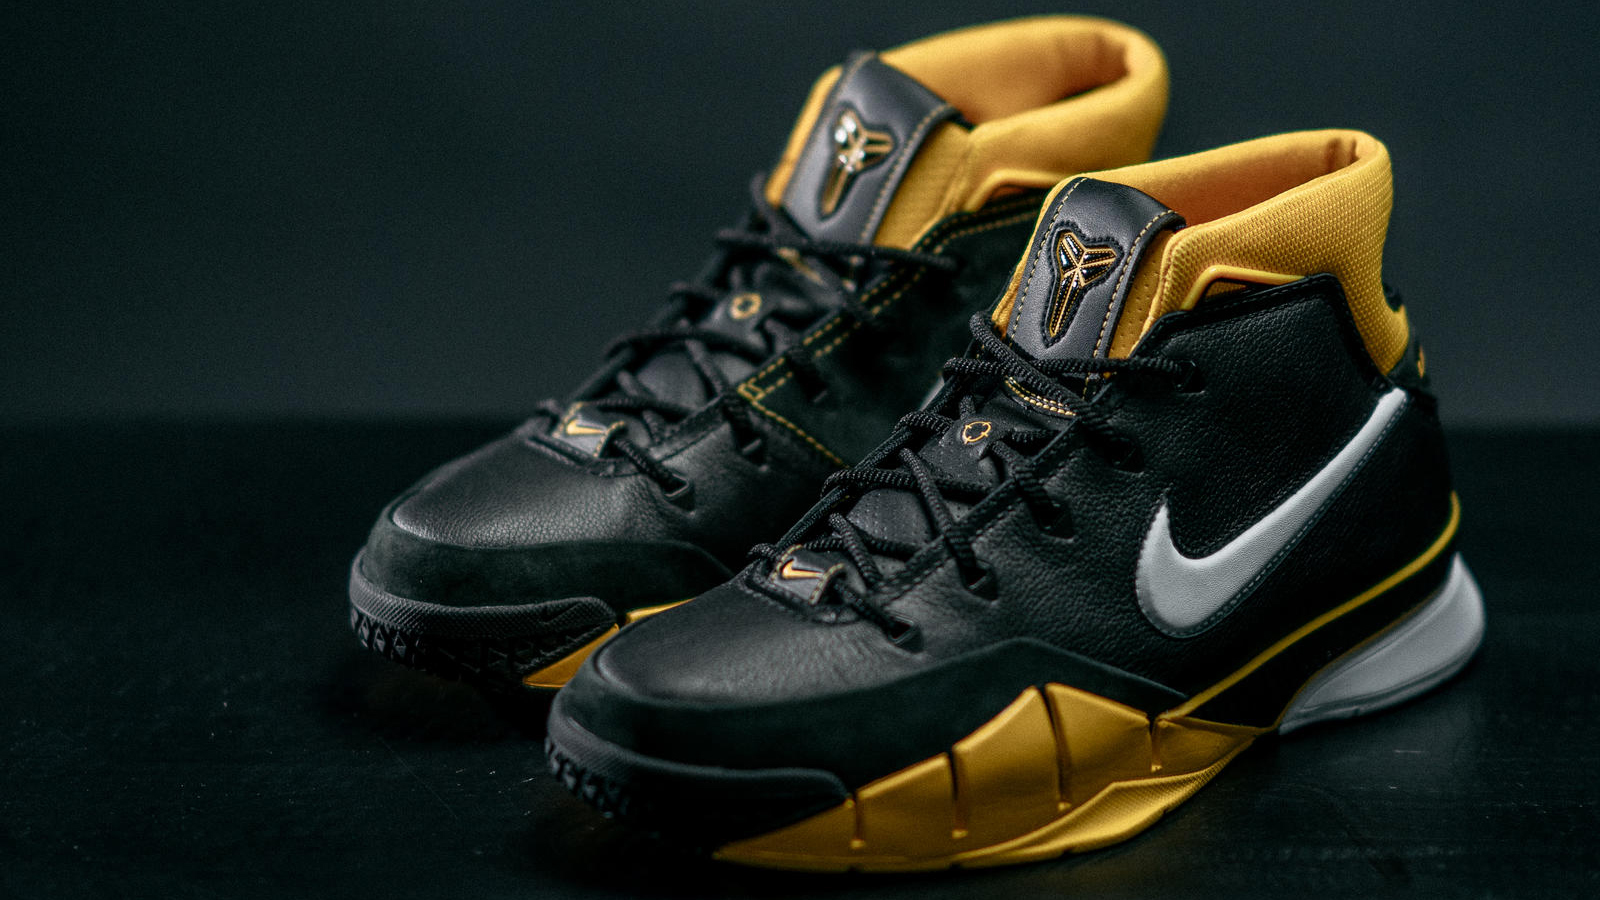 d2b87fd158c Kobe Bryant wasn t originally on board with retro ing his classic Nike Zoom  Kobe 1